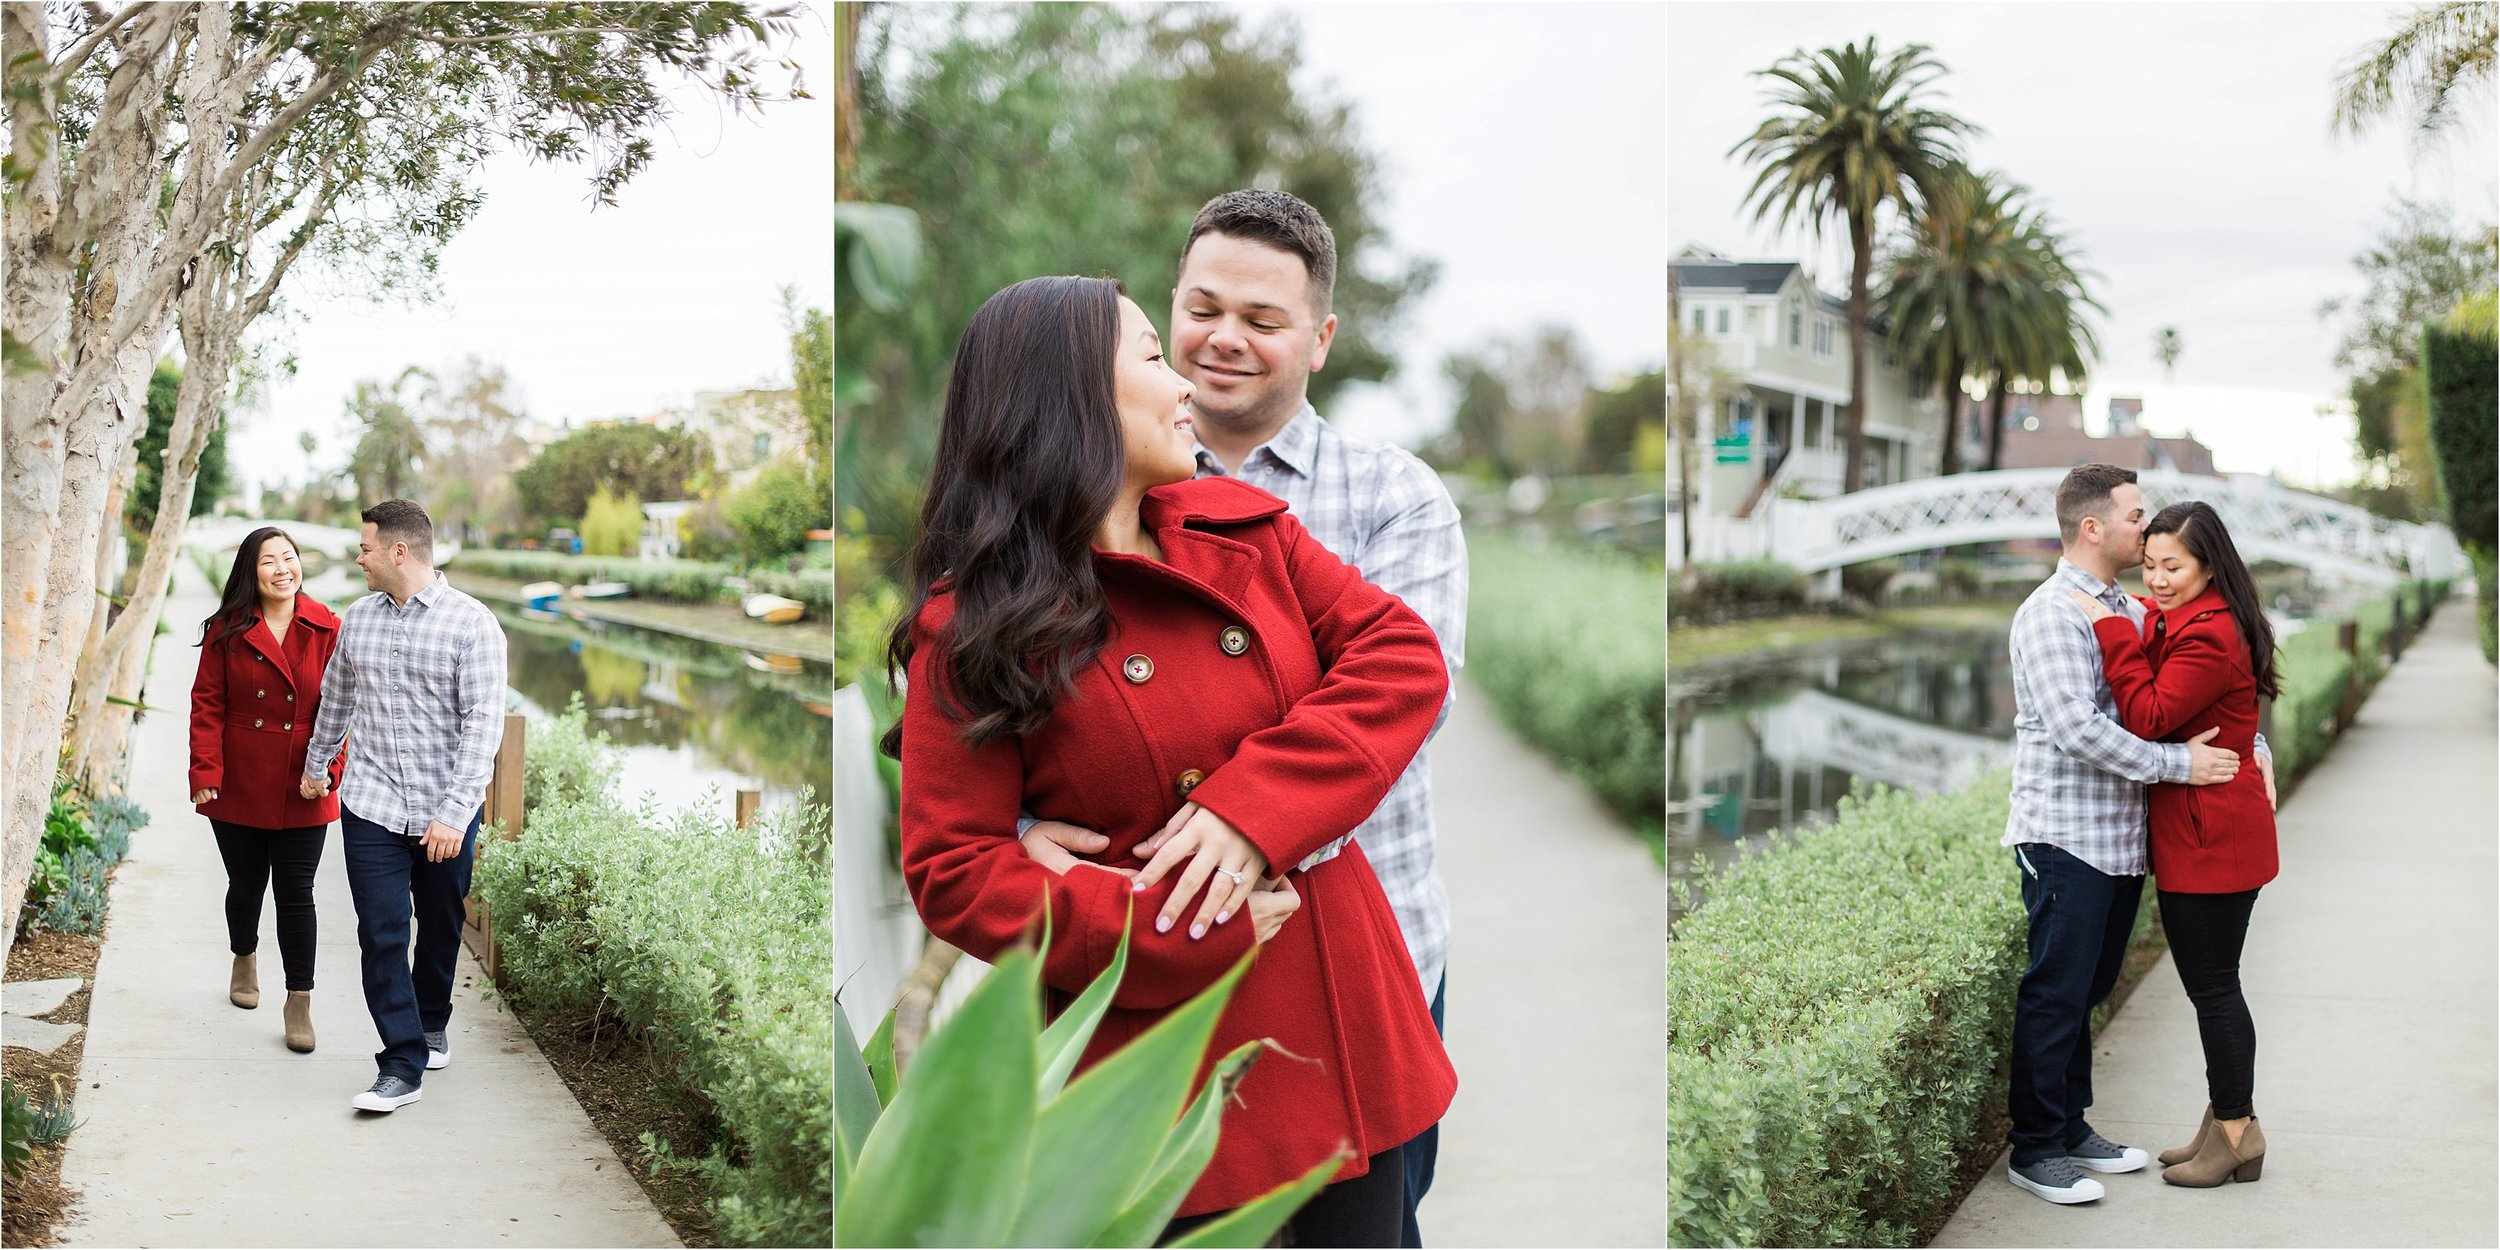 Venice Canals Engagement_0017.jpg